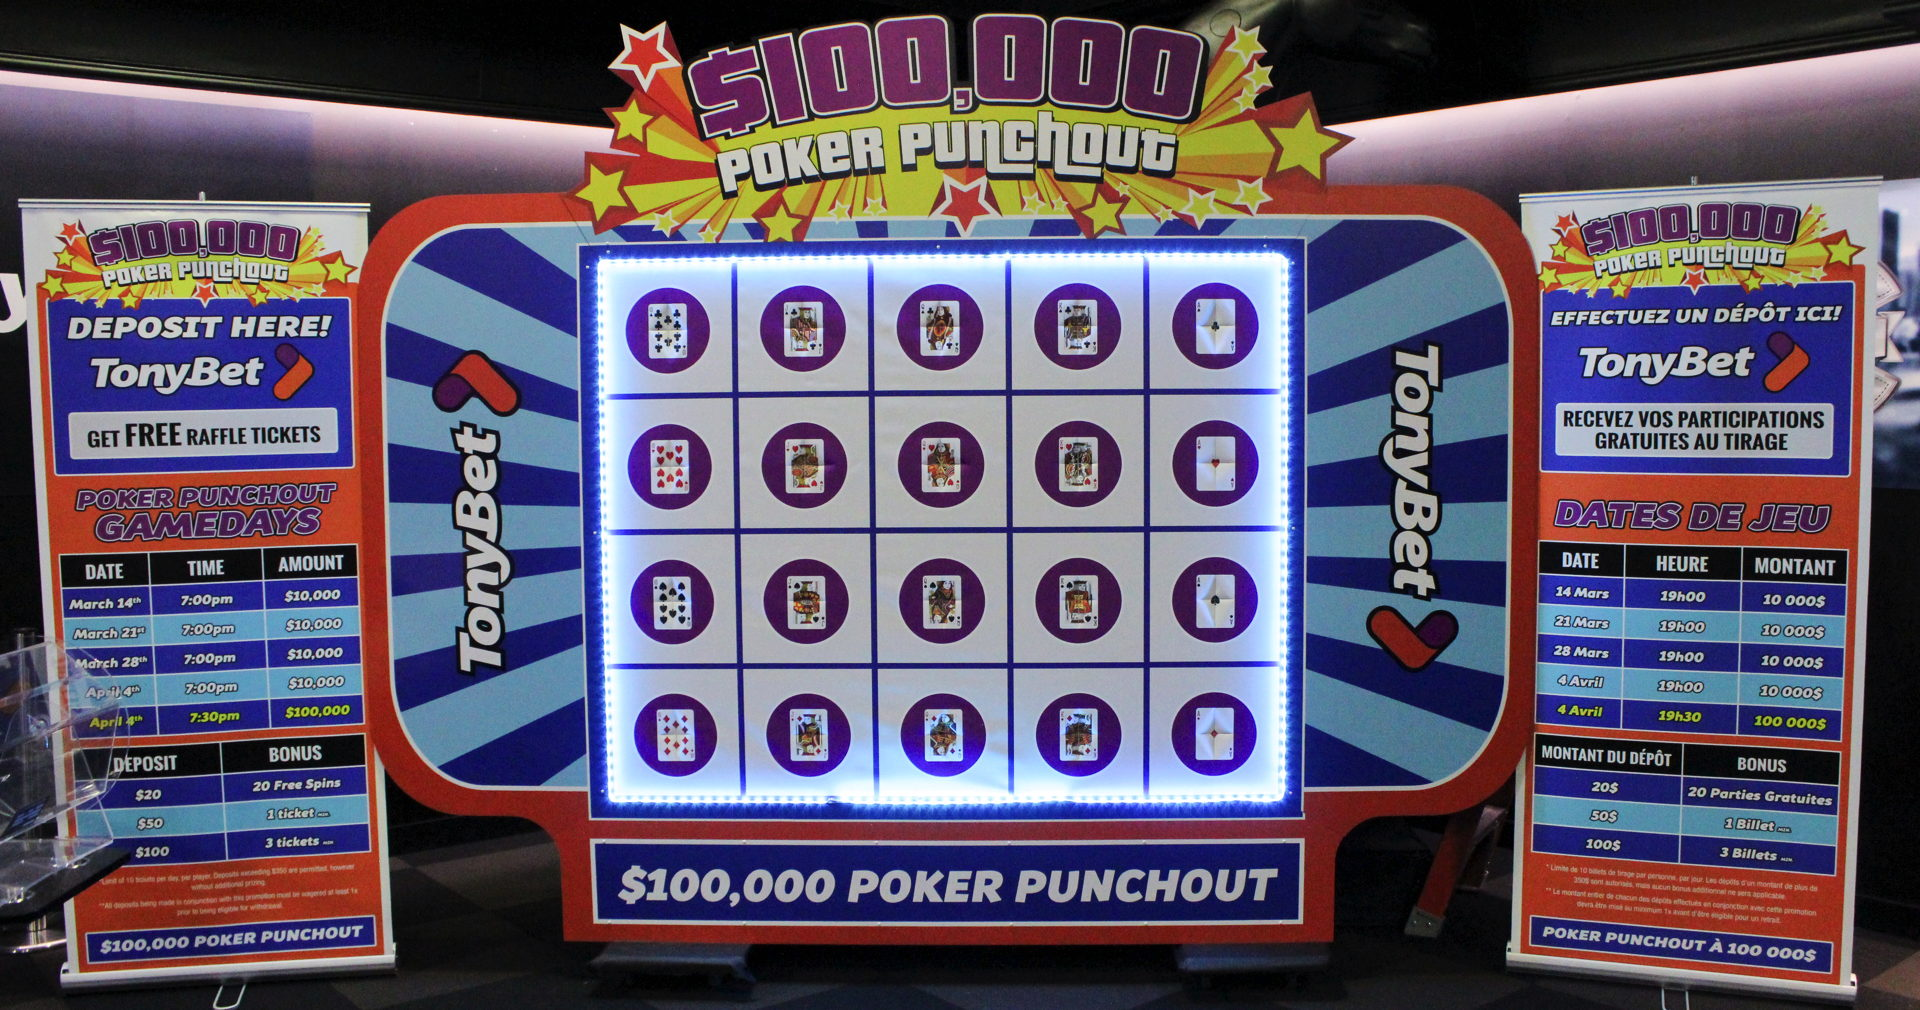 Introducing… the $100,000 Poker Punchout!